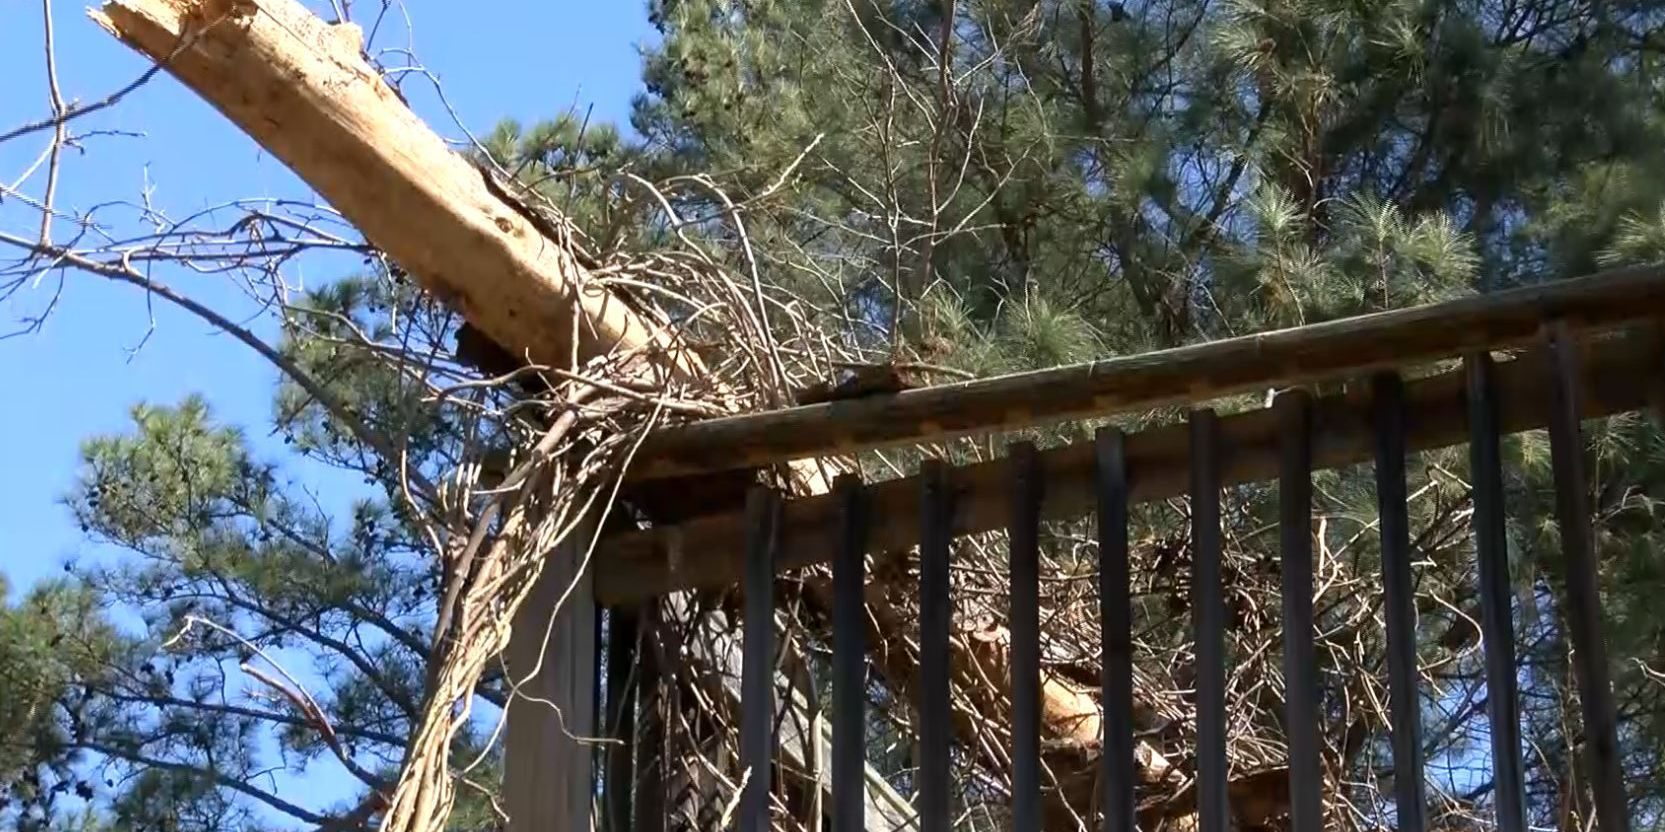 Tree woman was worried about falls on her deck; who foots the bill?